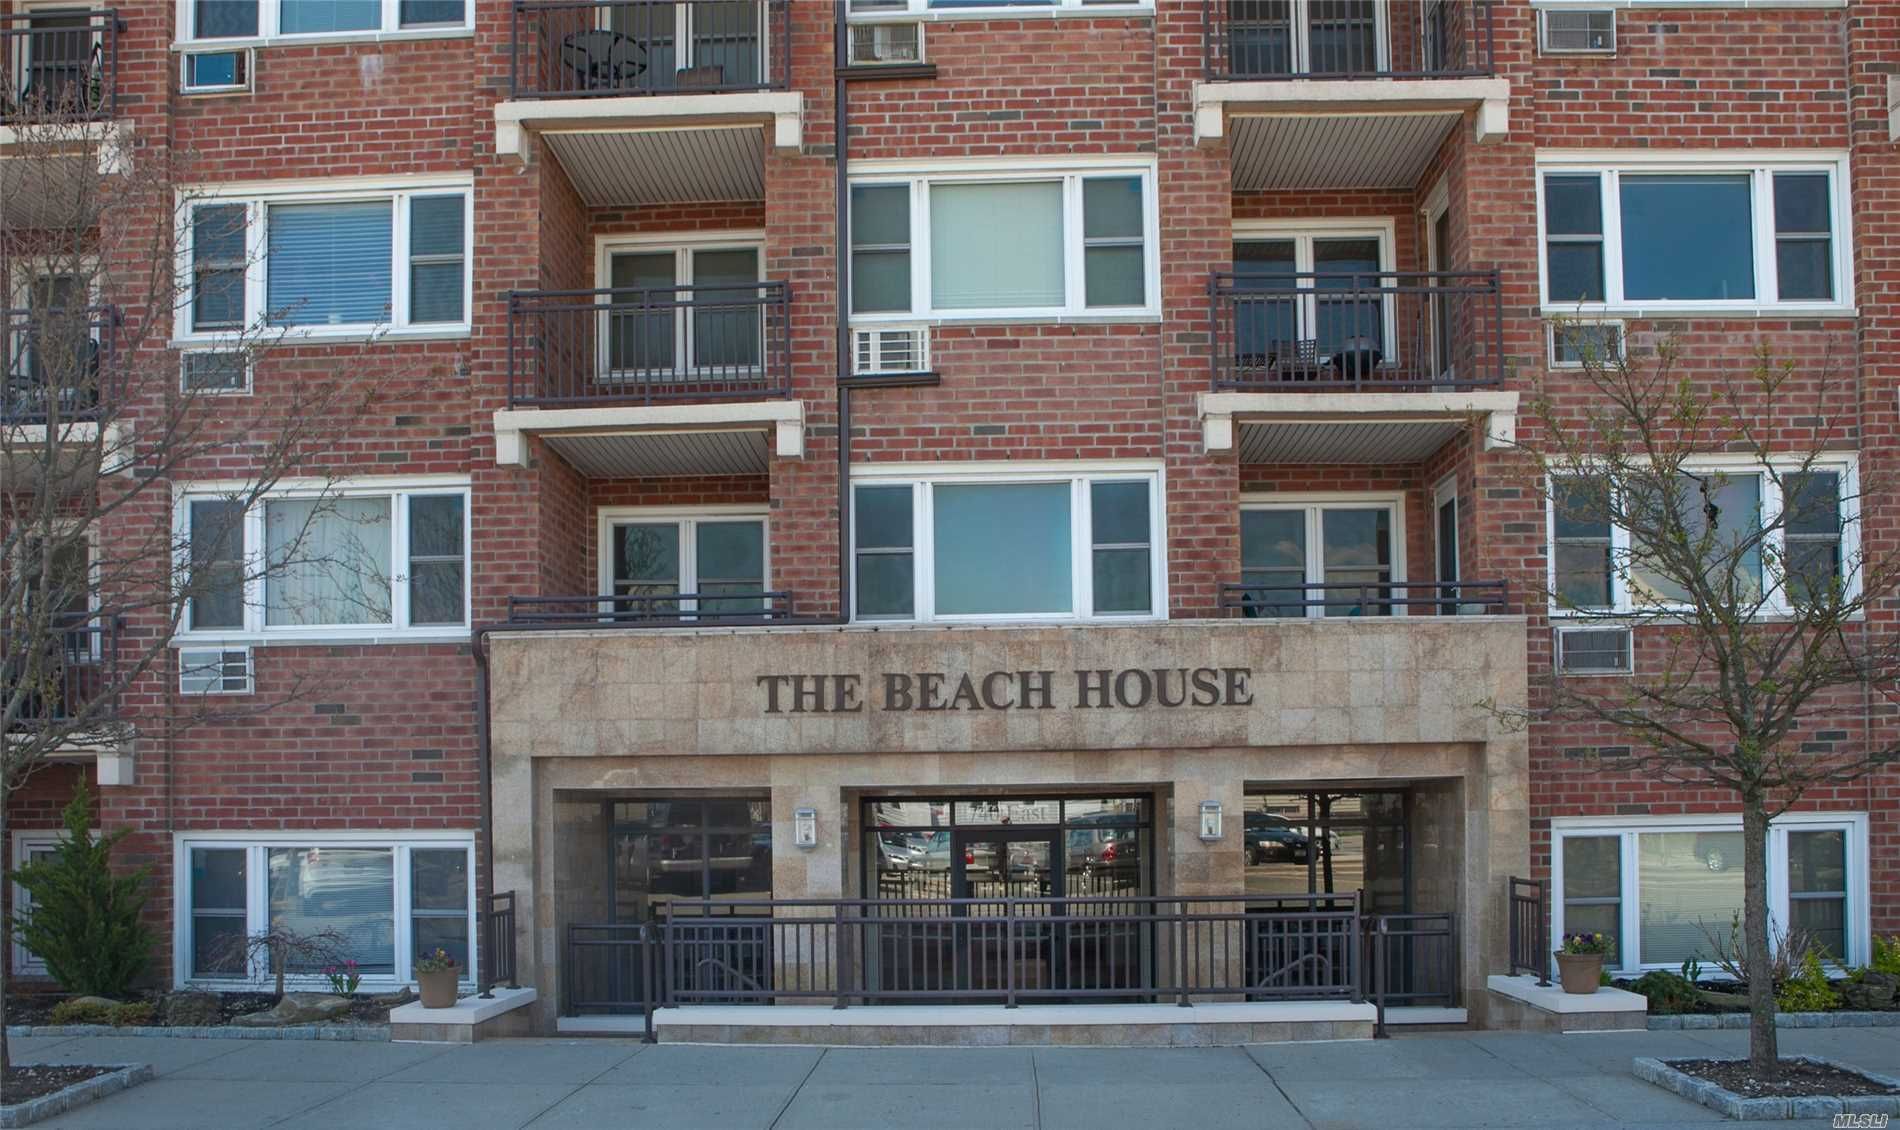 Don't Miss this Beautifully Renovated Alcove Studio Apartment with Stainless Steel Appliances, Gorgeous Wood Floors, Private Terrace, new bath and Lots of Closets. Well Maintained Building has Outdoor IG Heated Saltwater Pool, Bonus Serenity Garden, Bike Room and Gym. Washer/Dryer On Every Floor. Close to LIRR and on bus route. 1/2 block to beach!